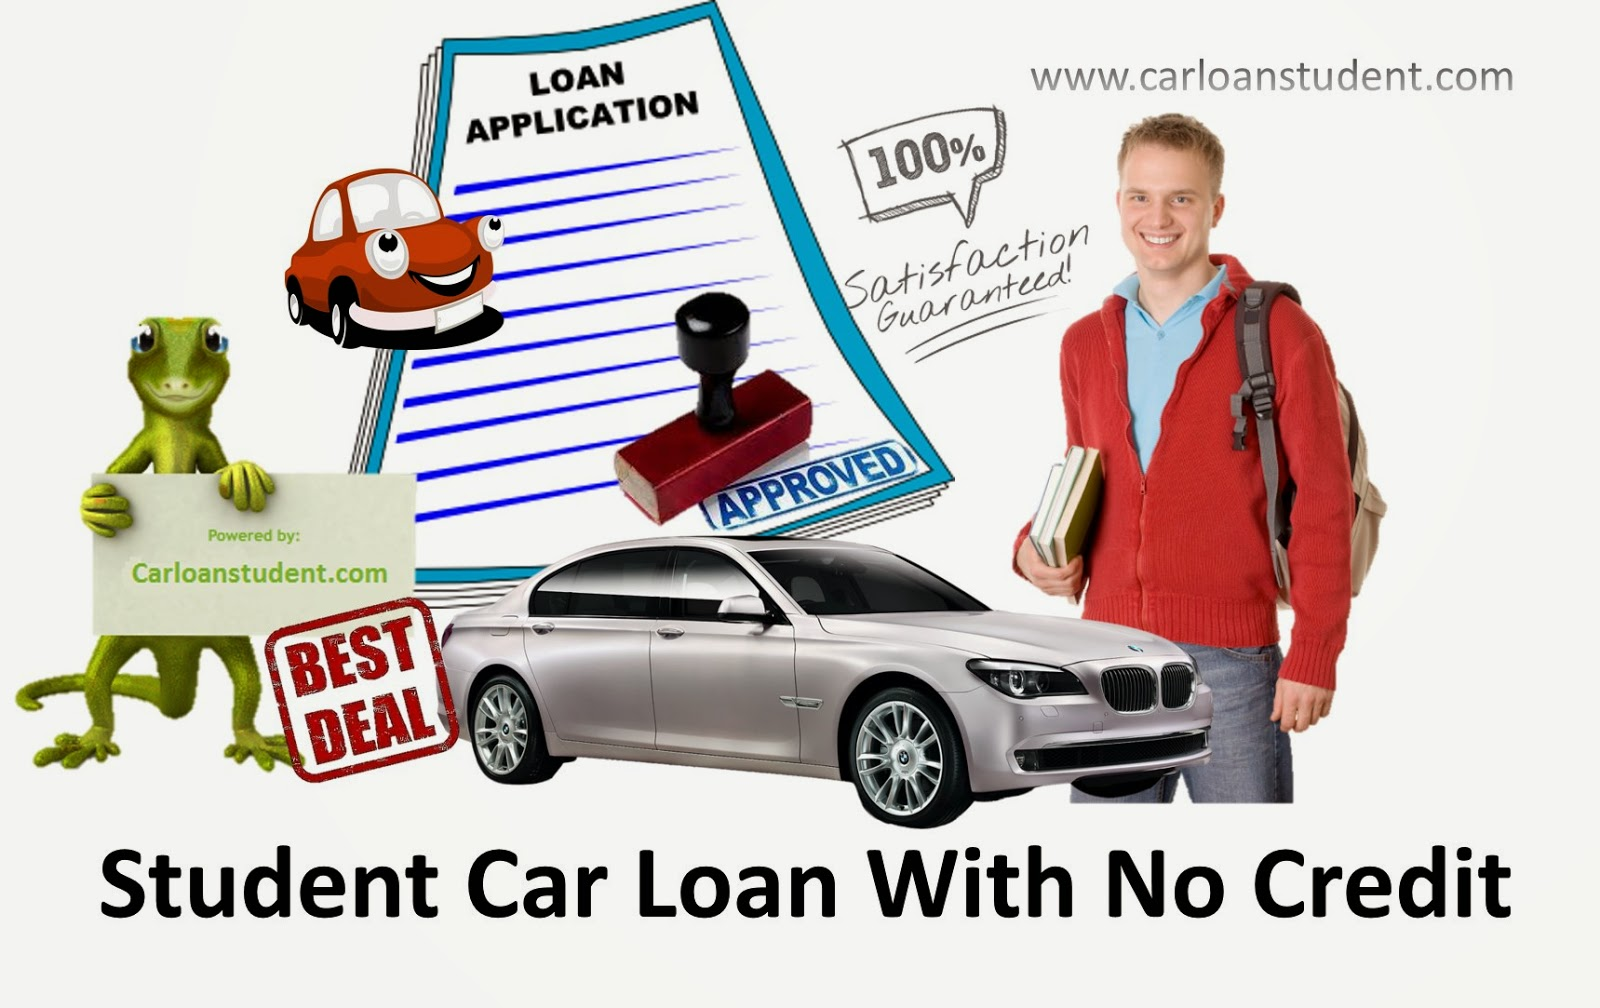 Apply for student car loan with no credit